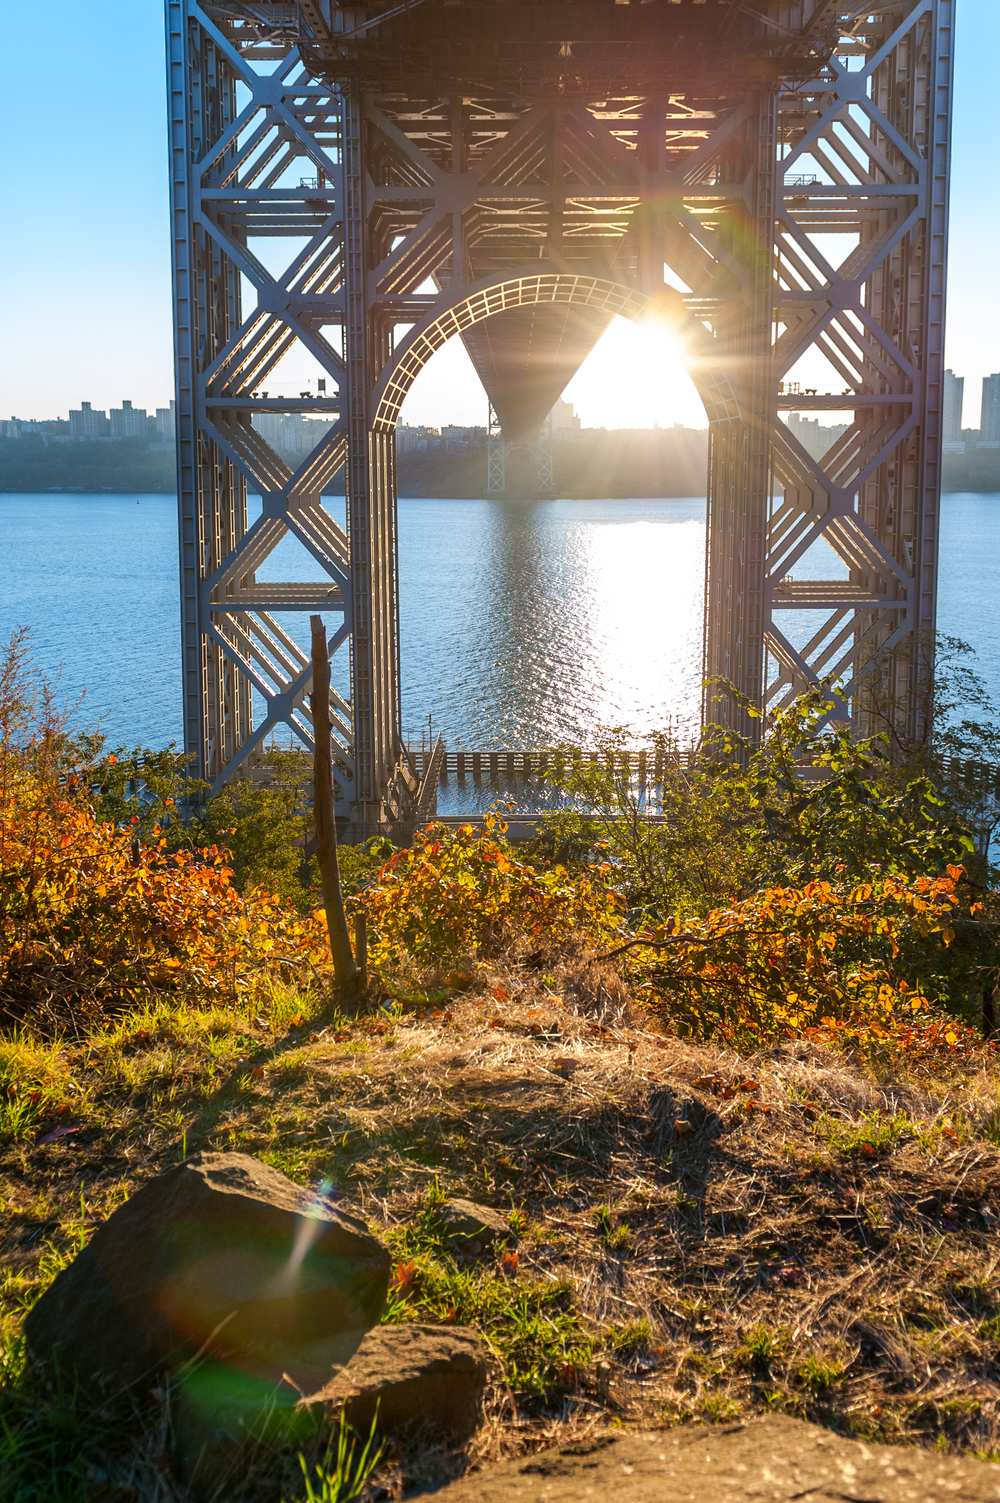 view_under_george_washington_bridge_2013.jpg